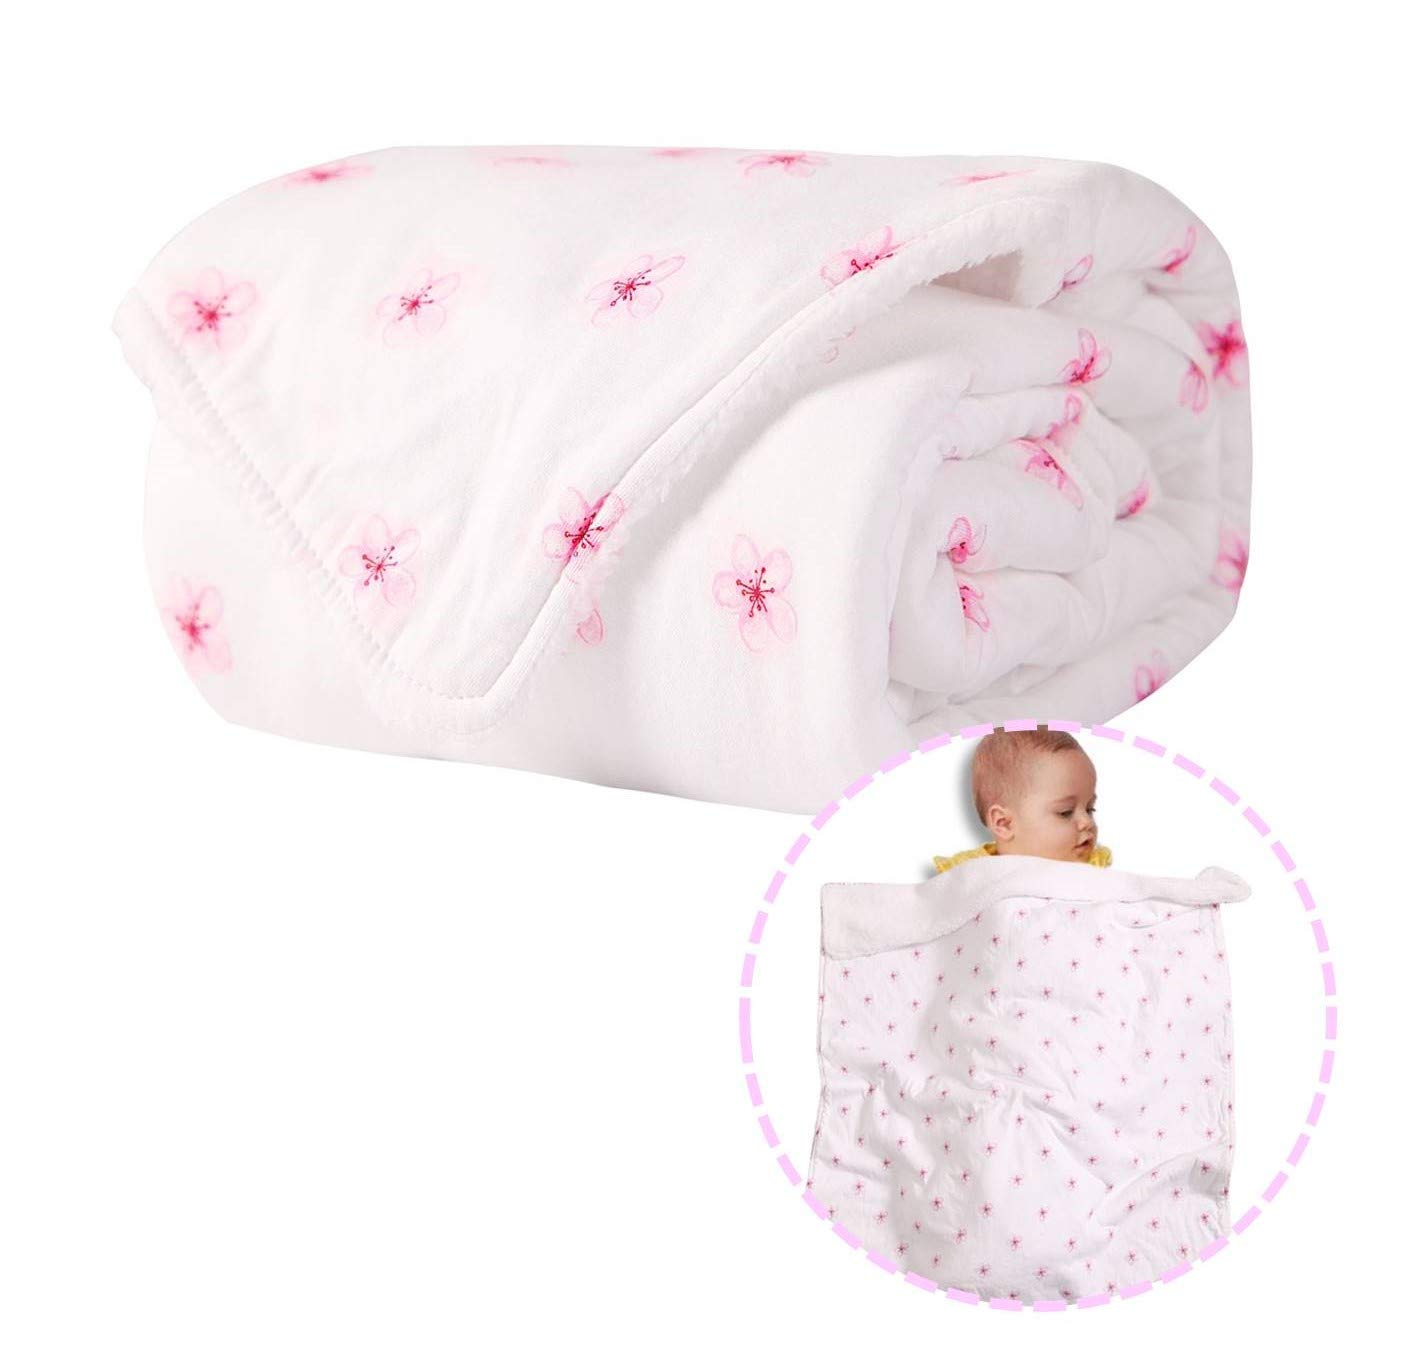 Little Grape Land Pink Floral Plush Baby Blanket, Jersey Cotton Front with Sherpa Back Minky Baby Blanket,One Size 30x40IN, Soft Swaddling Blanket for Newborn Girls, Ideal Infant Shower Gift